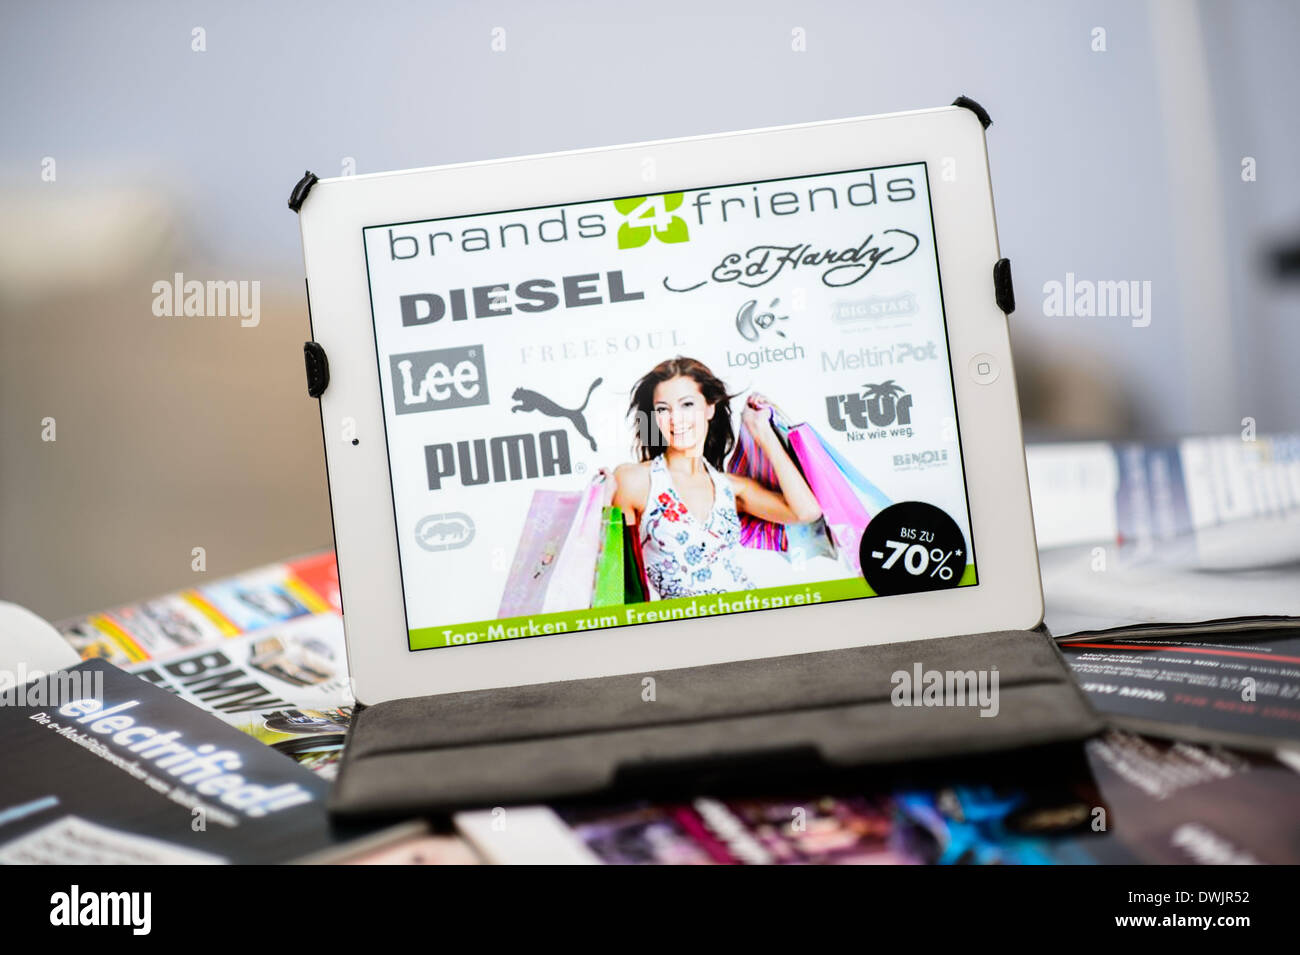 Brands4friends on a is seen the website of the shopping stock